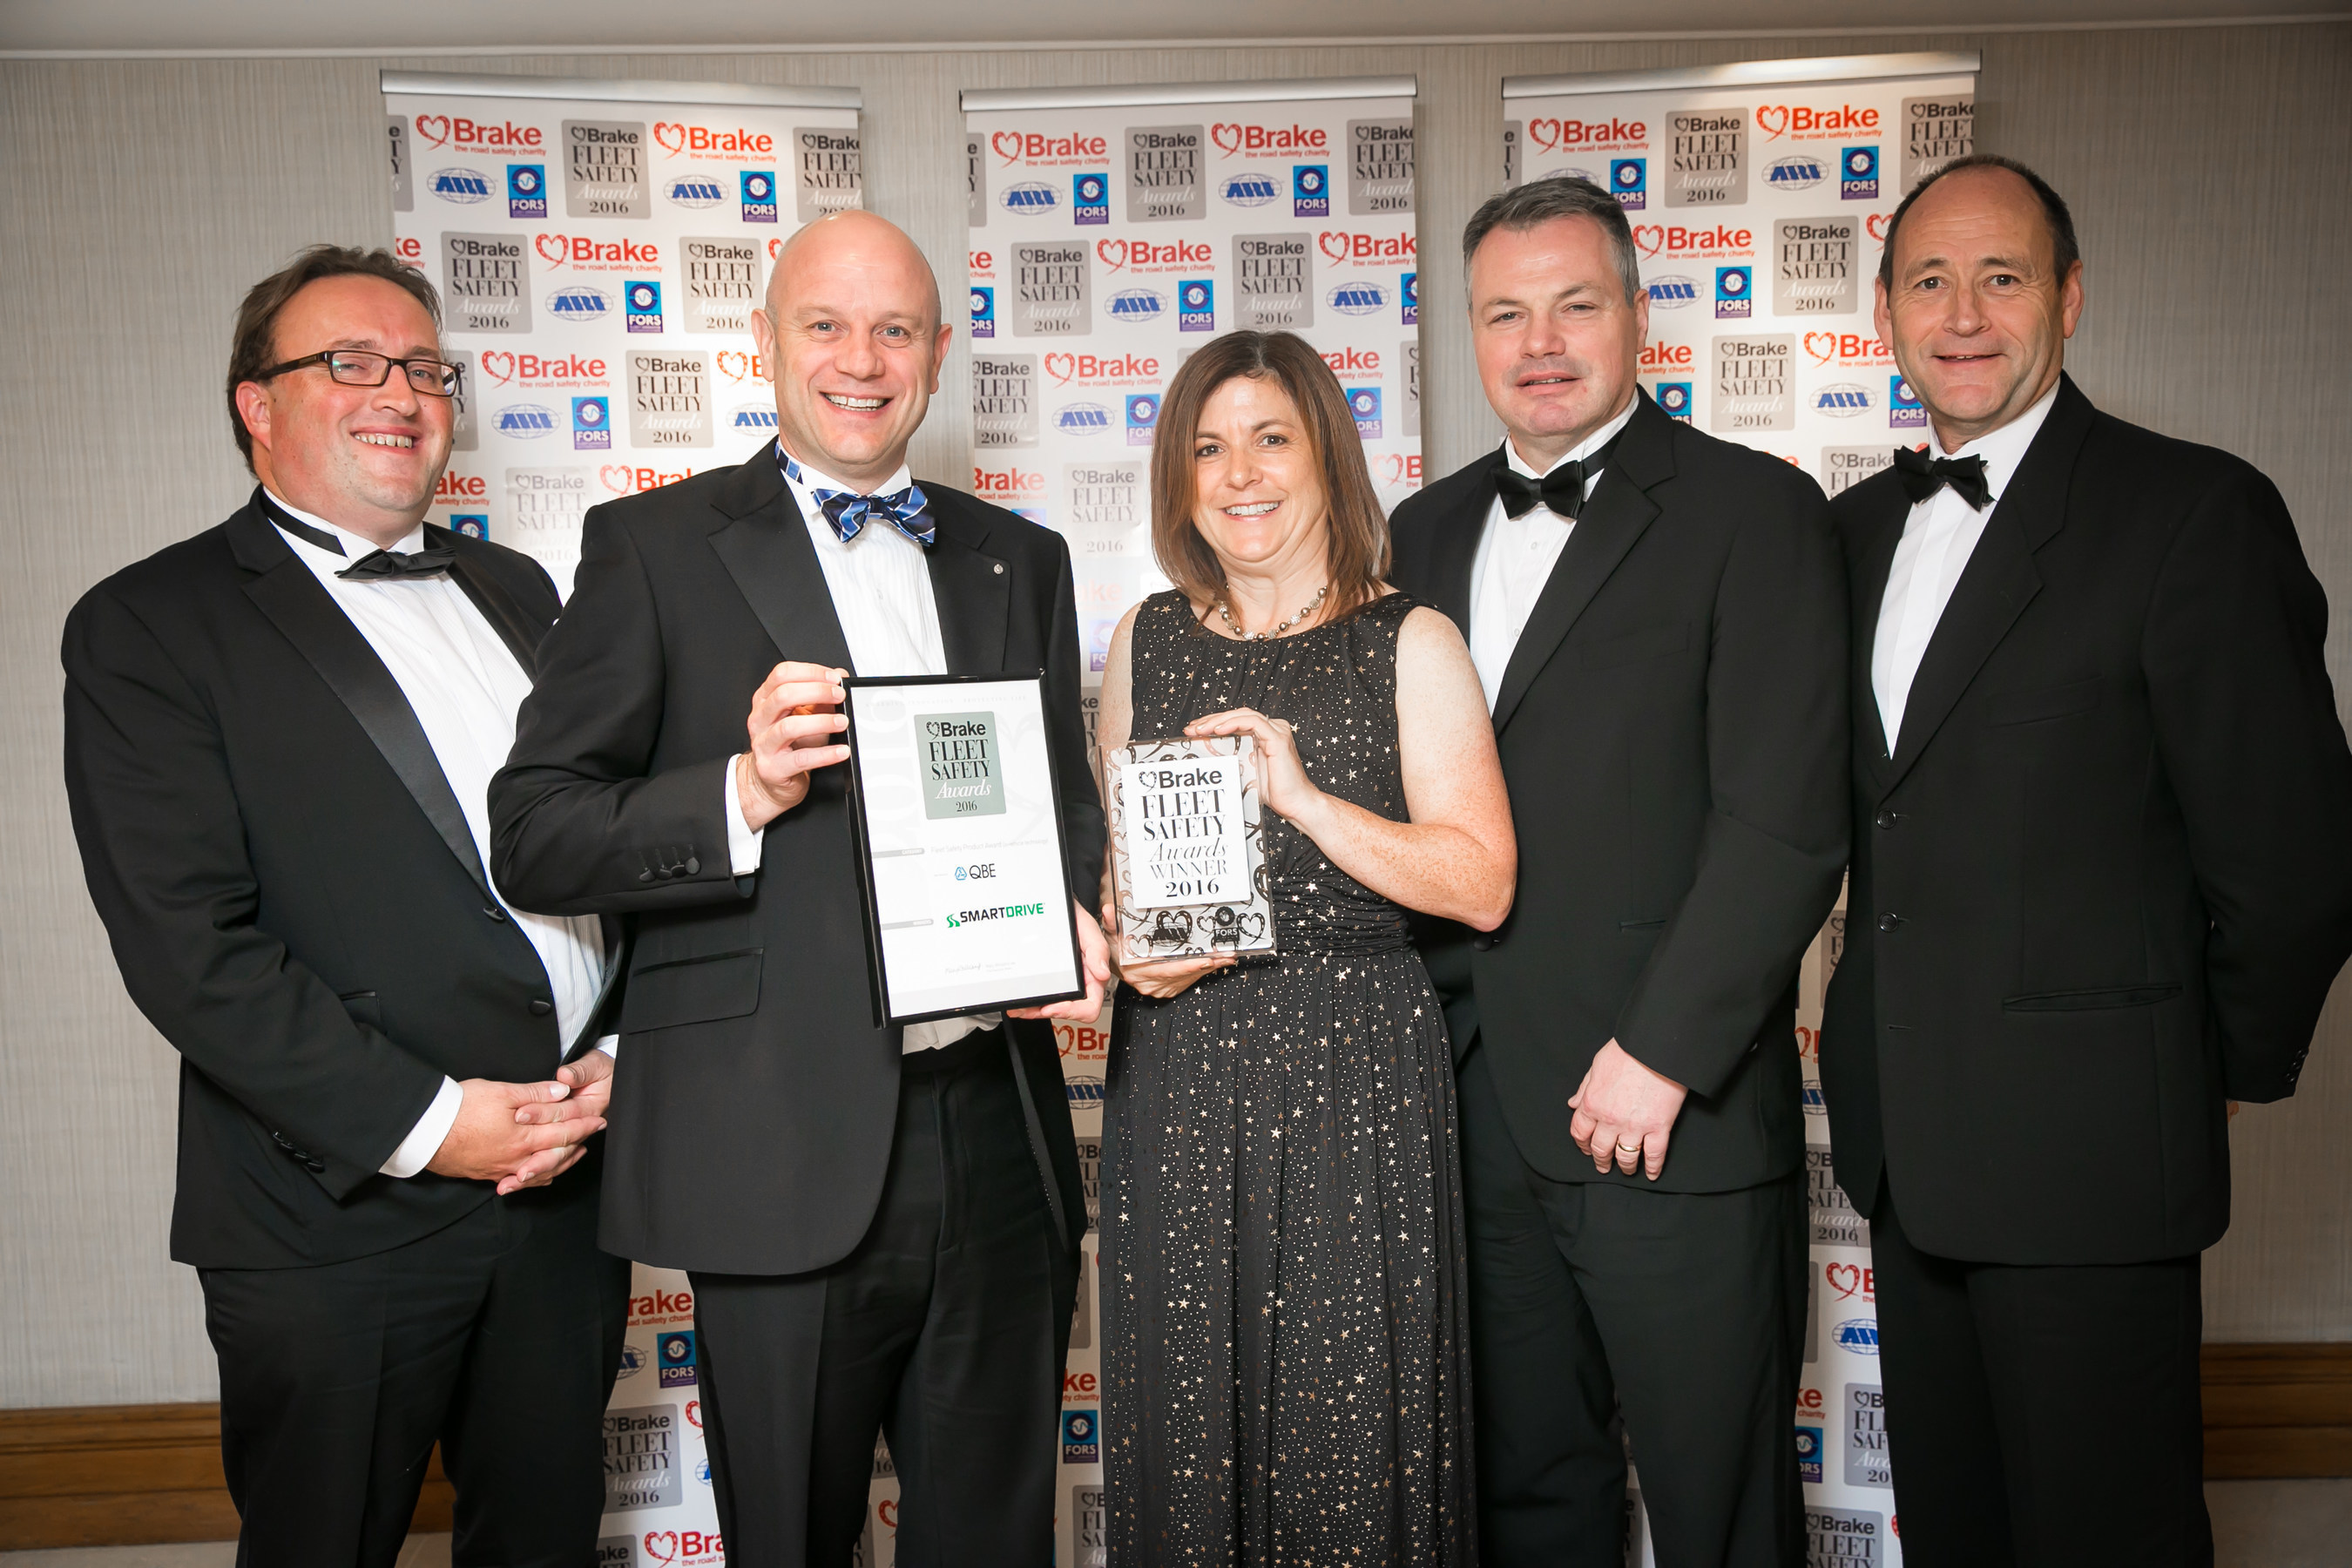 SmartDrive representatives (from left) Mark Hampson, Carl McFarlane, Penny Randall, Aidan Rowsome and Phil Morrell receive the 2016 Brake Award for the Best Fleet Safety Product - In-Vehicle, recognising SmartDrive's Video-Based Driver Safety Programme.